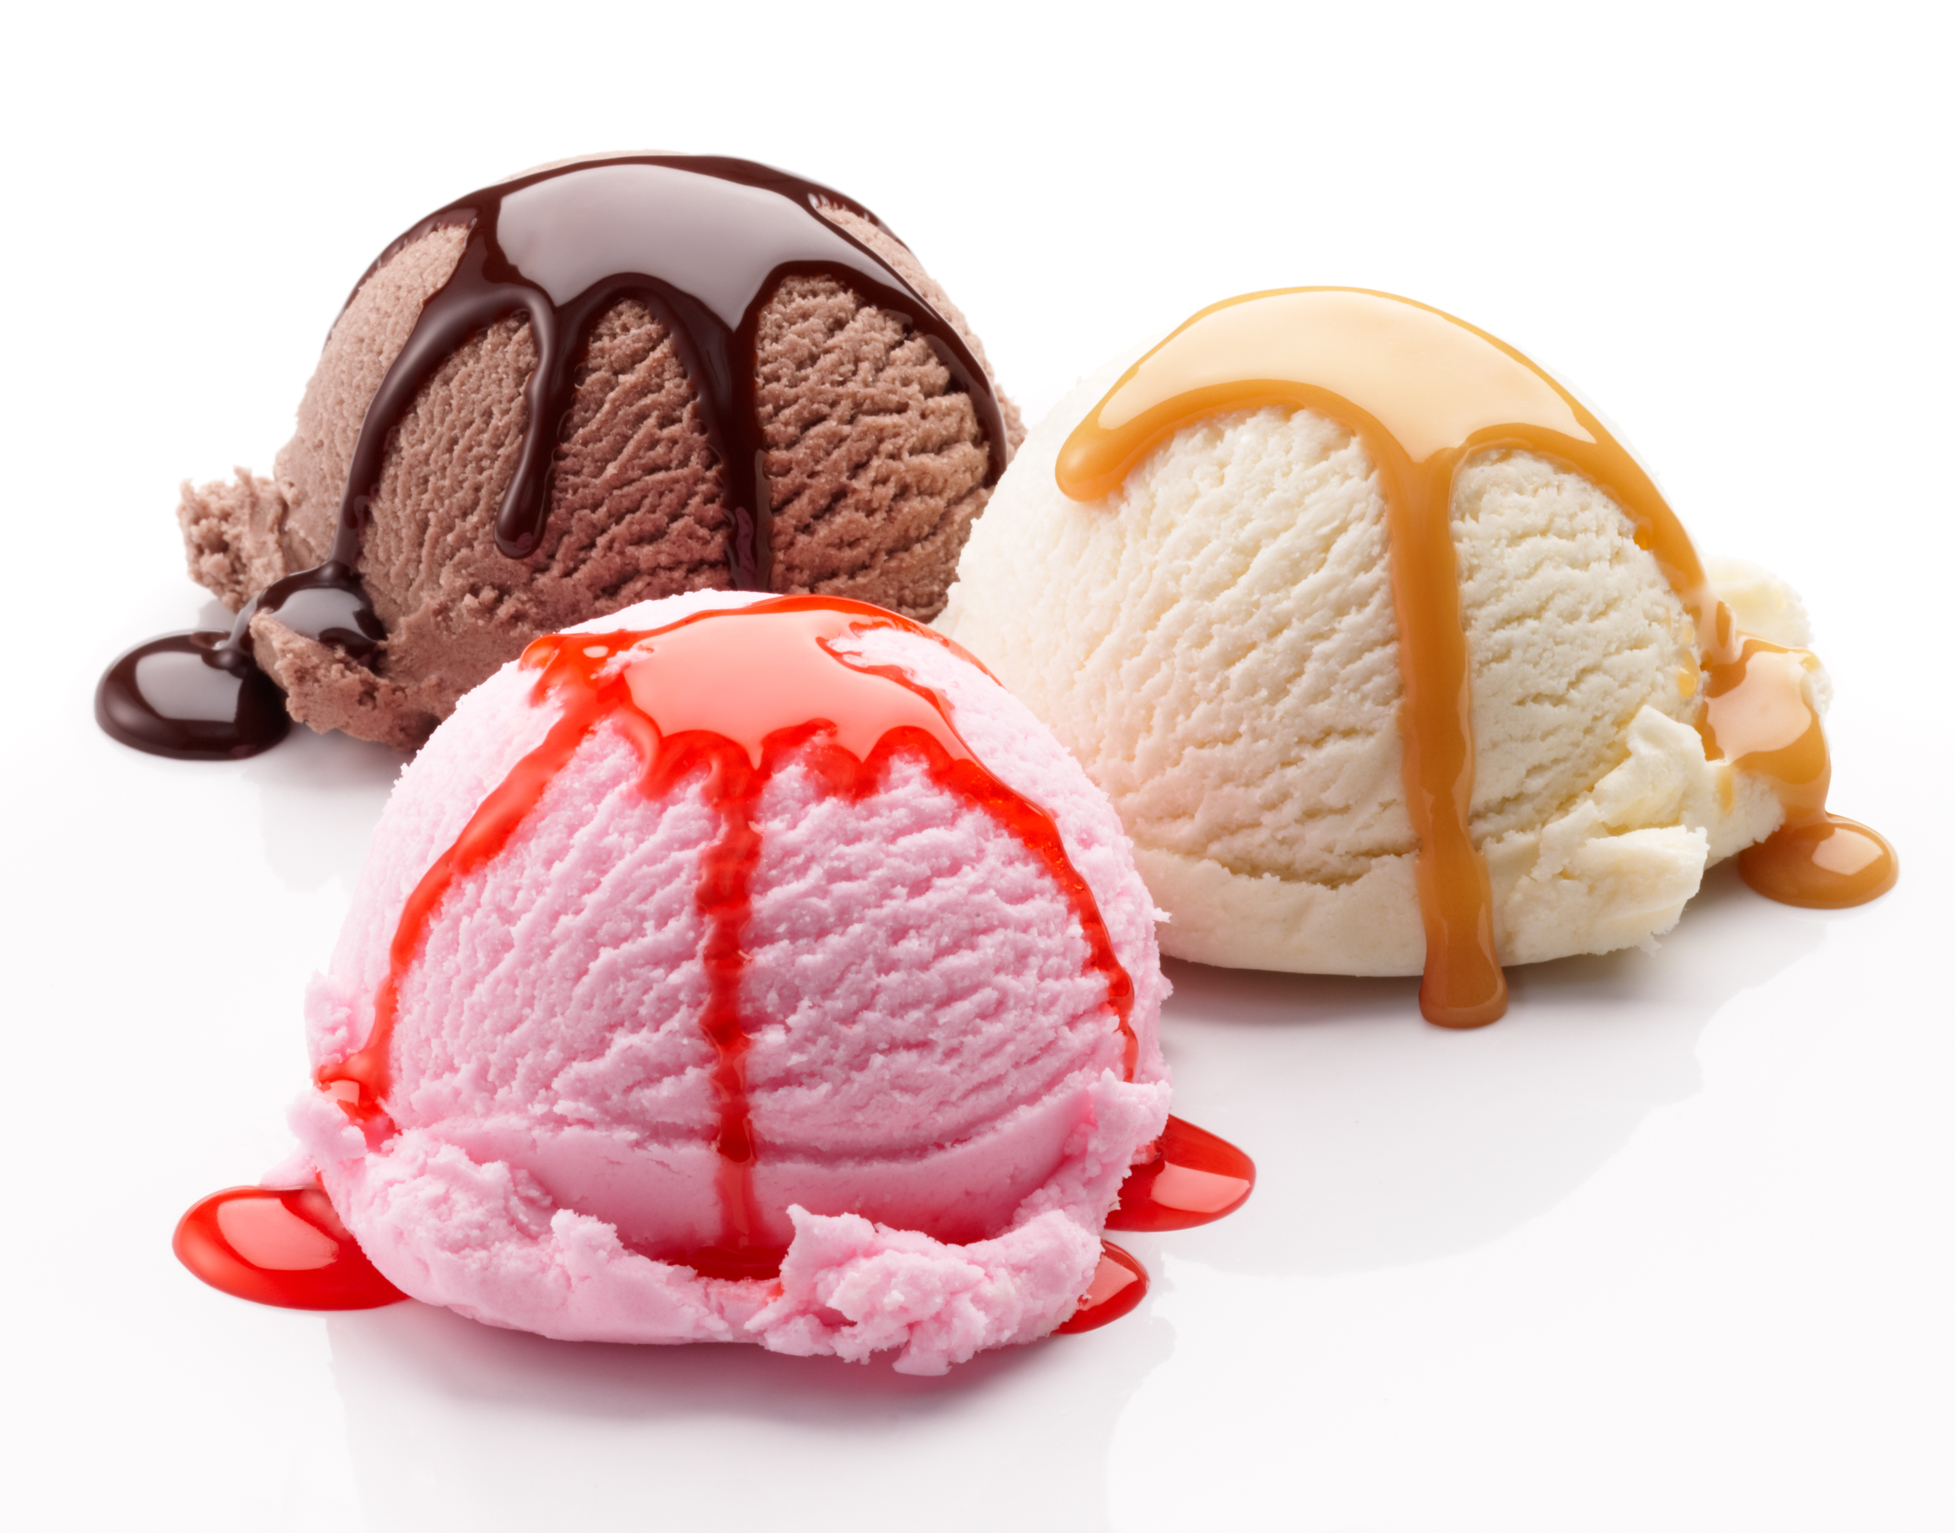 neapolitan-ice-cream-15779155